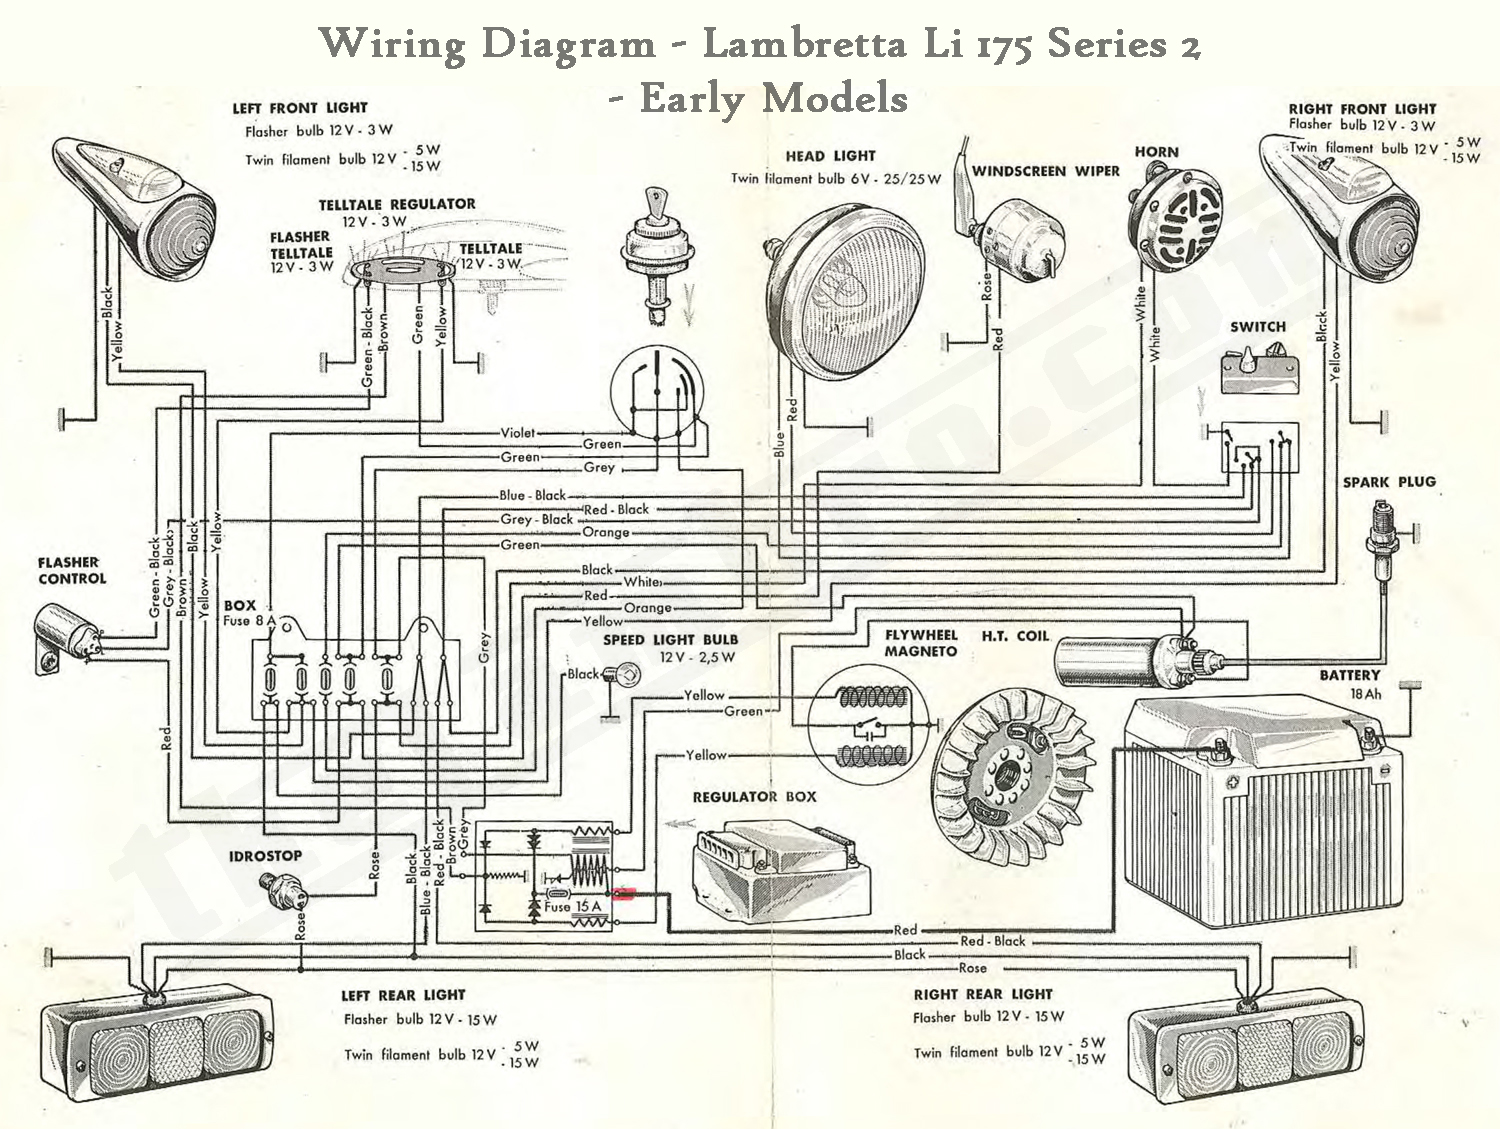 wiring diagram _series2_early_175 thelambro com electrics bosch dynastart wiring diagram at mr168.co